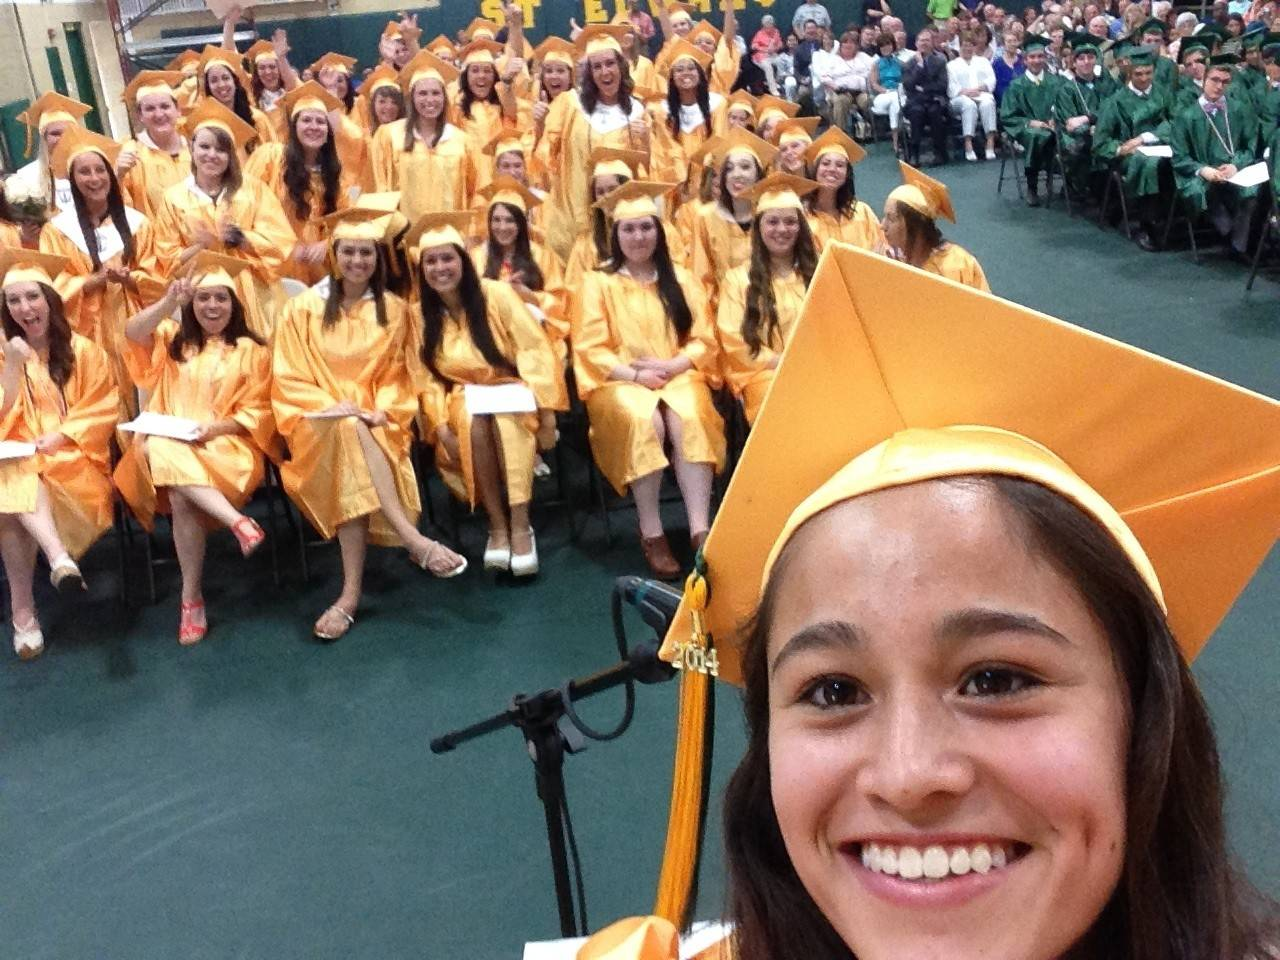 St. Edward senior Monica Ramirez, the honorary captain of the Daily Herald's Fox Valley girls soccer all-area team, took this selfie with her class at the school's baccalaureate ceremony. Ramirez was the salutatorian of the Class of 2014.